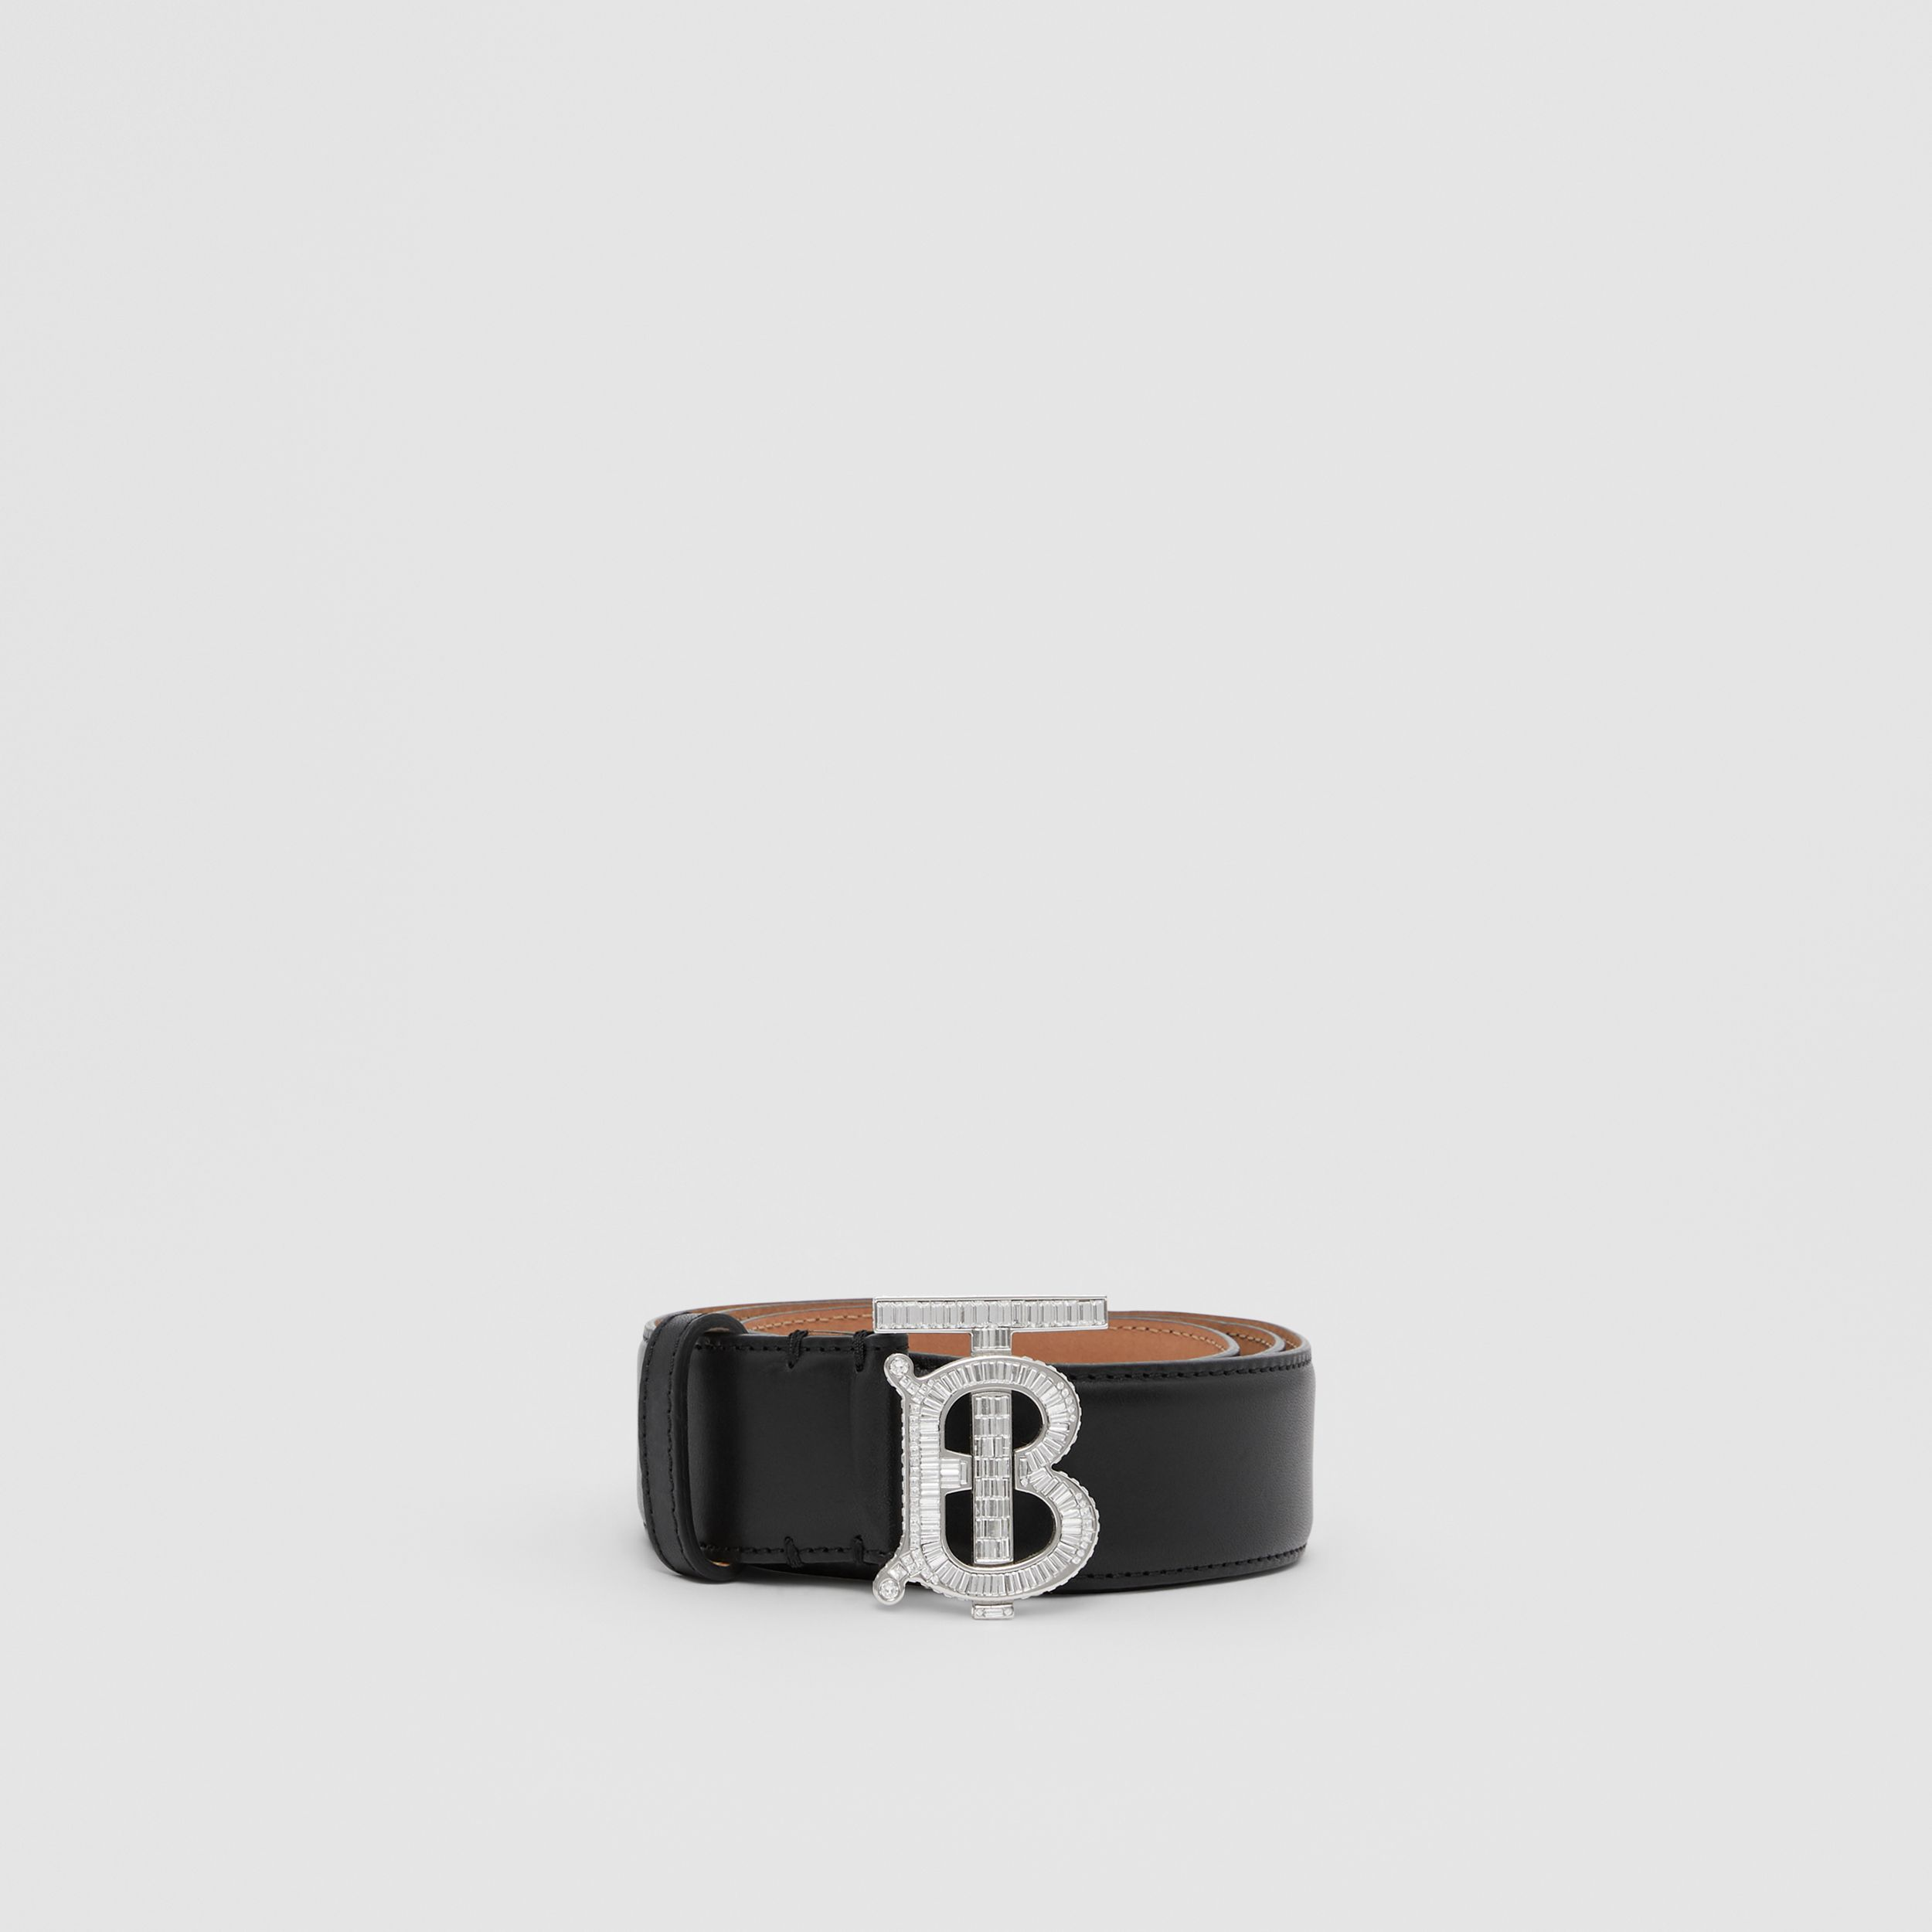 Crystal Monogram Motif Leather Belt in Black/palladium | Burberry - 4